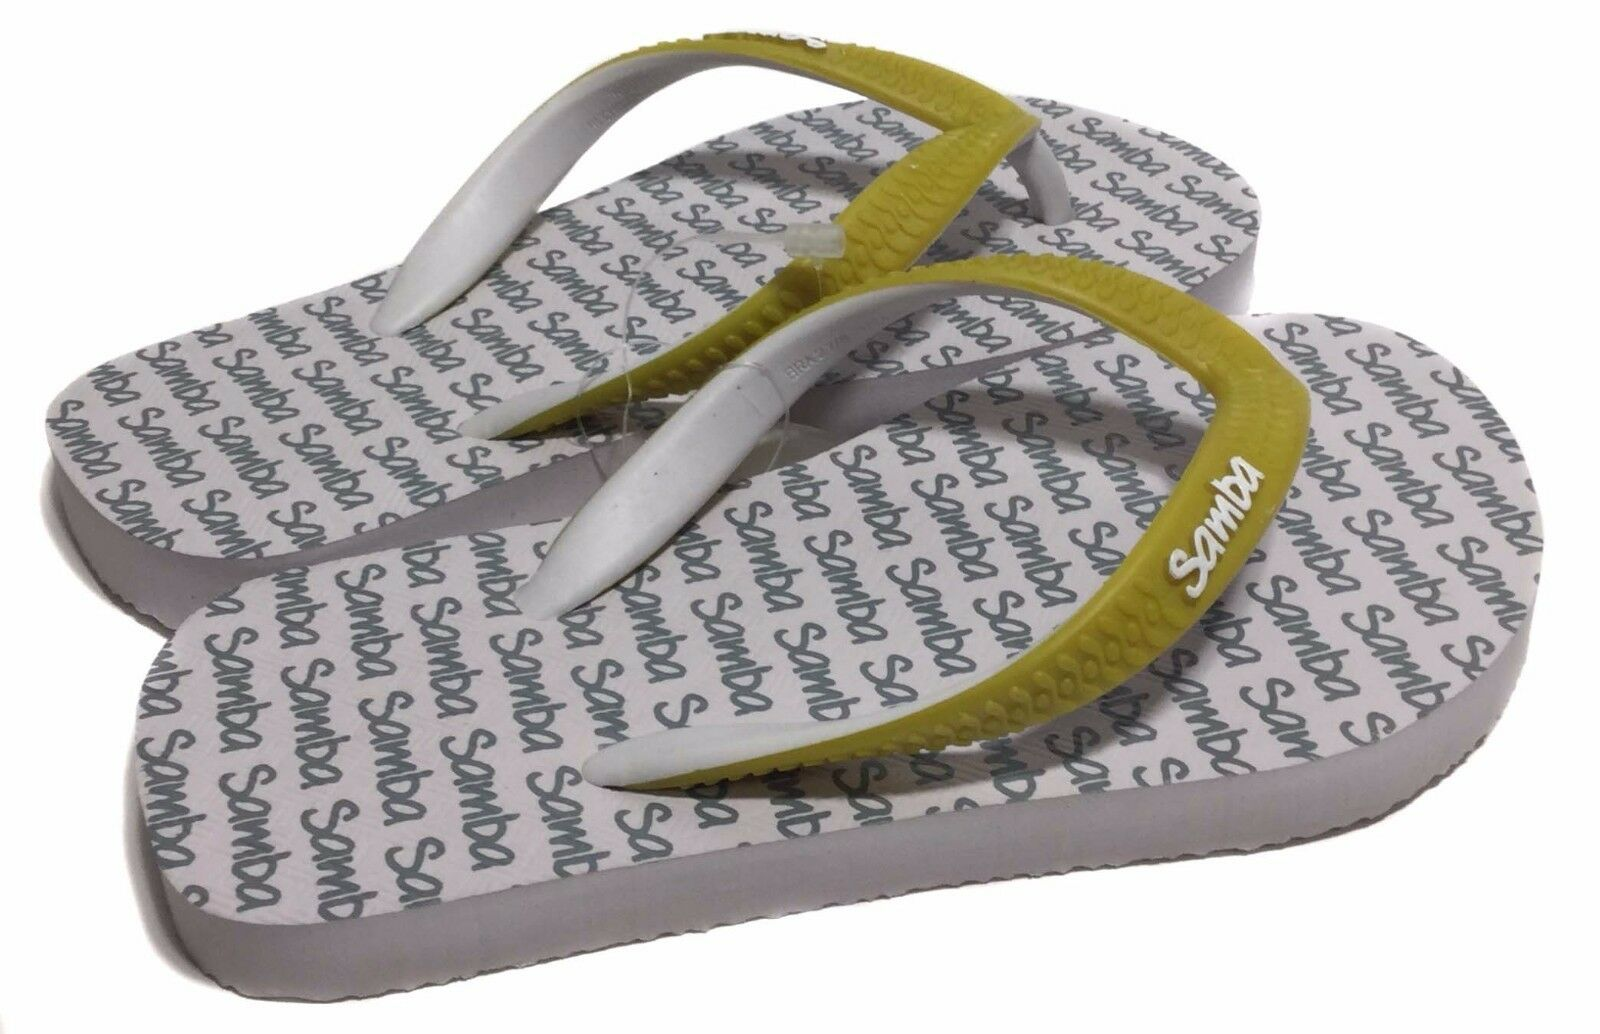 NWT Samba Sol Child's Collection Flip Flops White Solid, 29/0 Size US 11/1 Euro 29/0 Solid, 5013f2